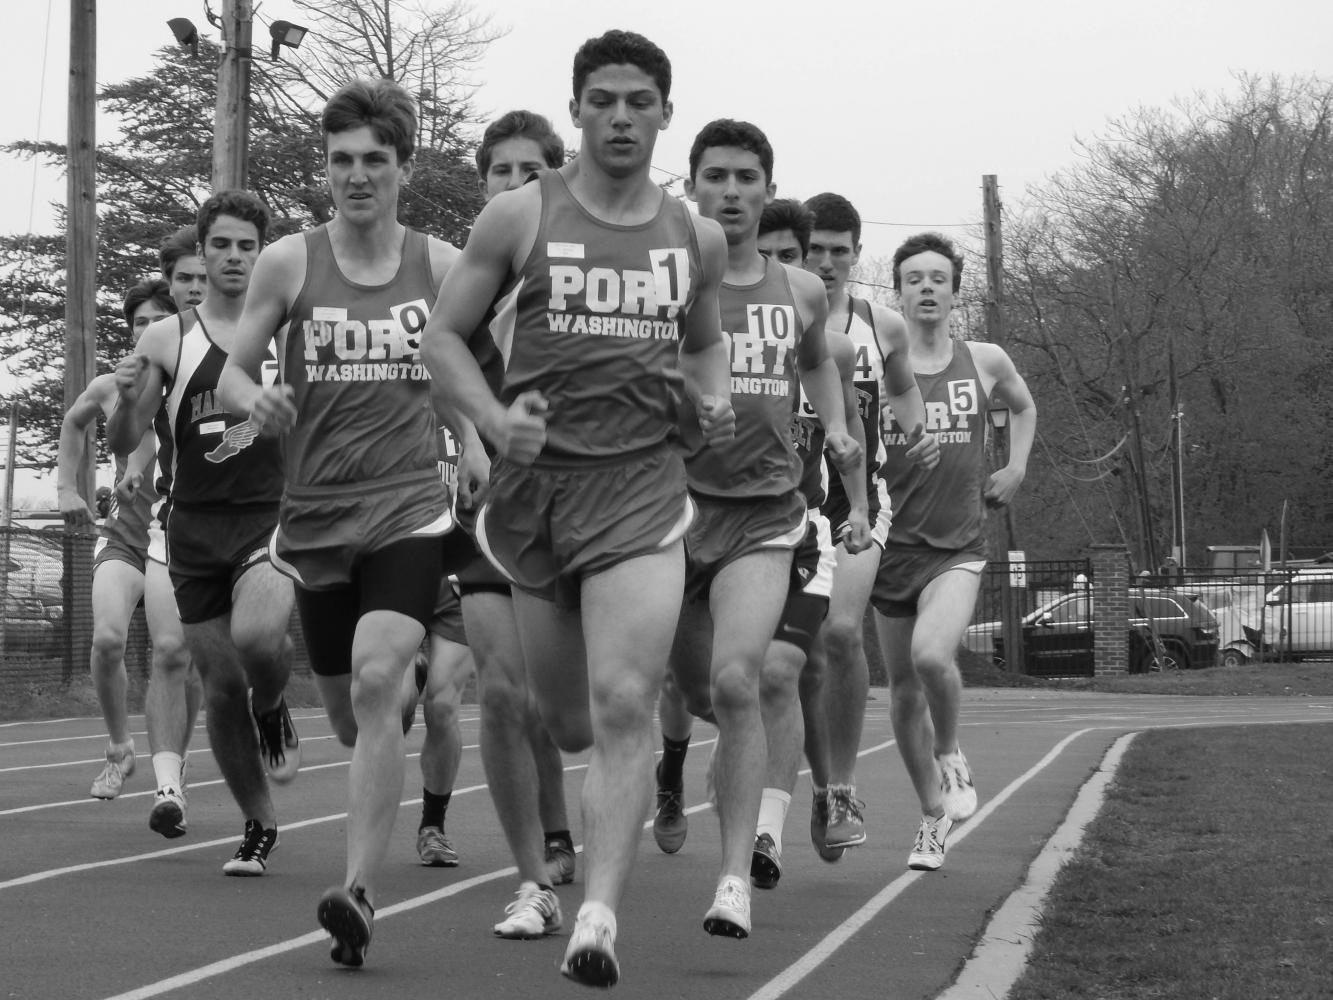 Senior+captain+Aaron+Siff-Scherr+leads+the+pack+of+runners+in+the+1600m+race+in+the+Port+Washington+Invitational+on+April+21.